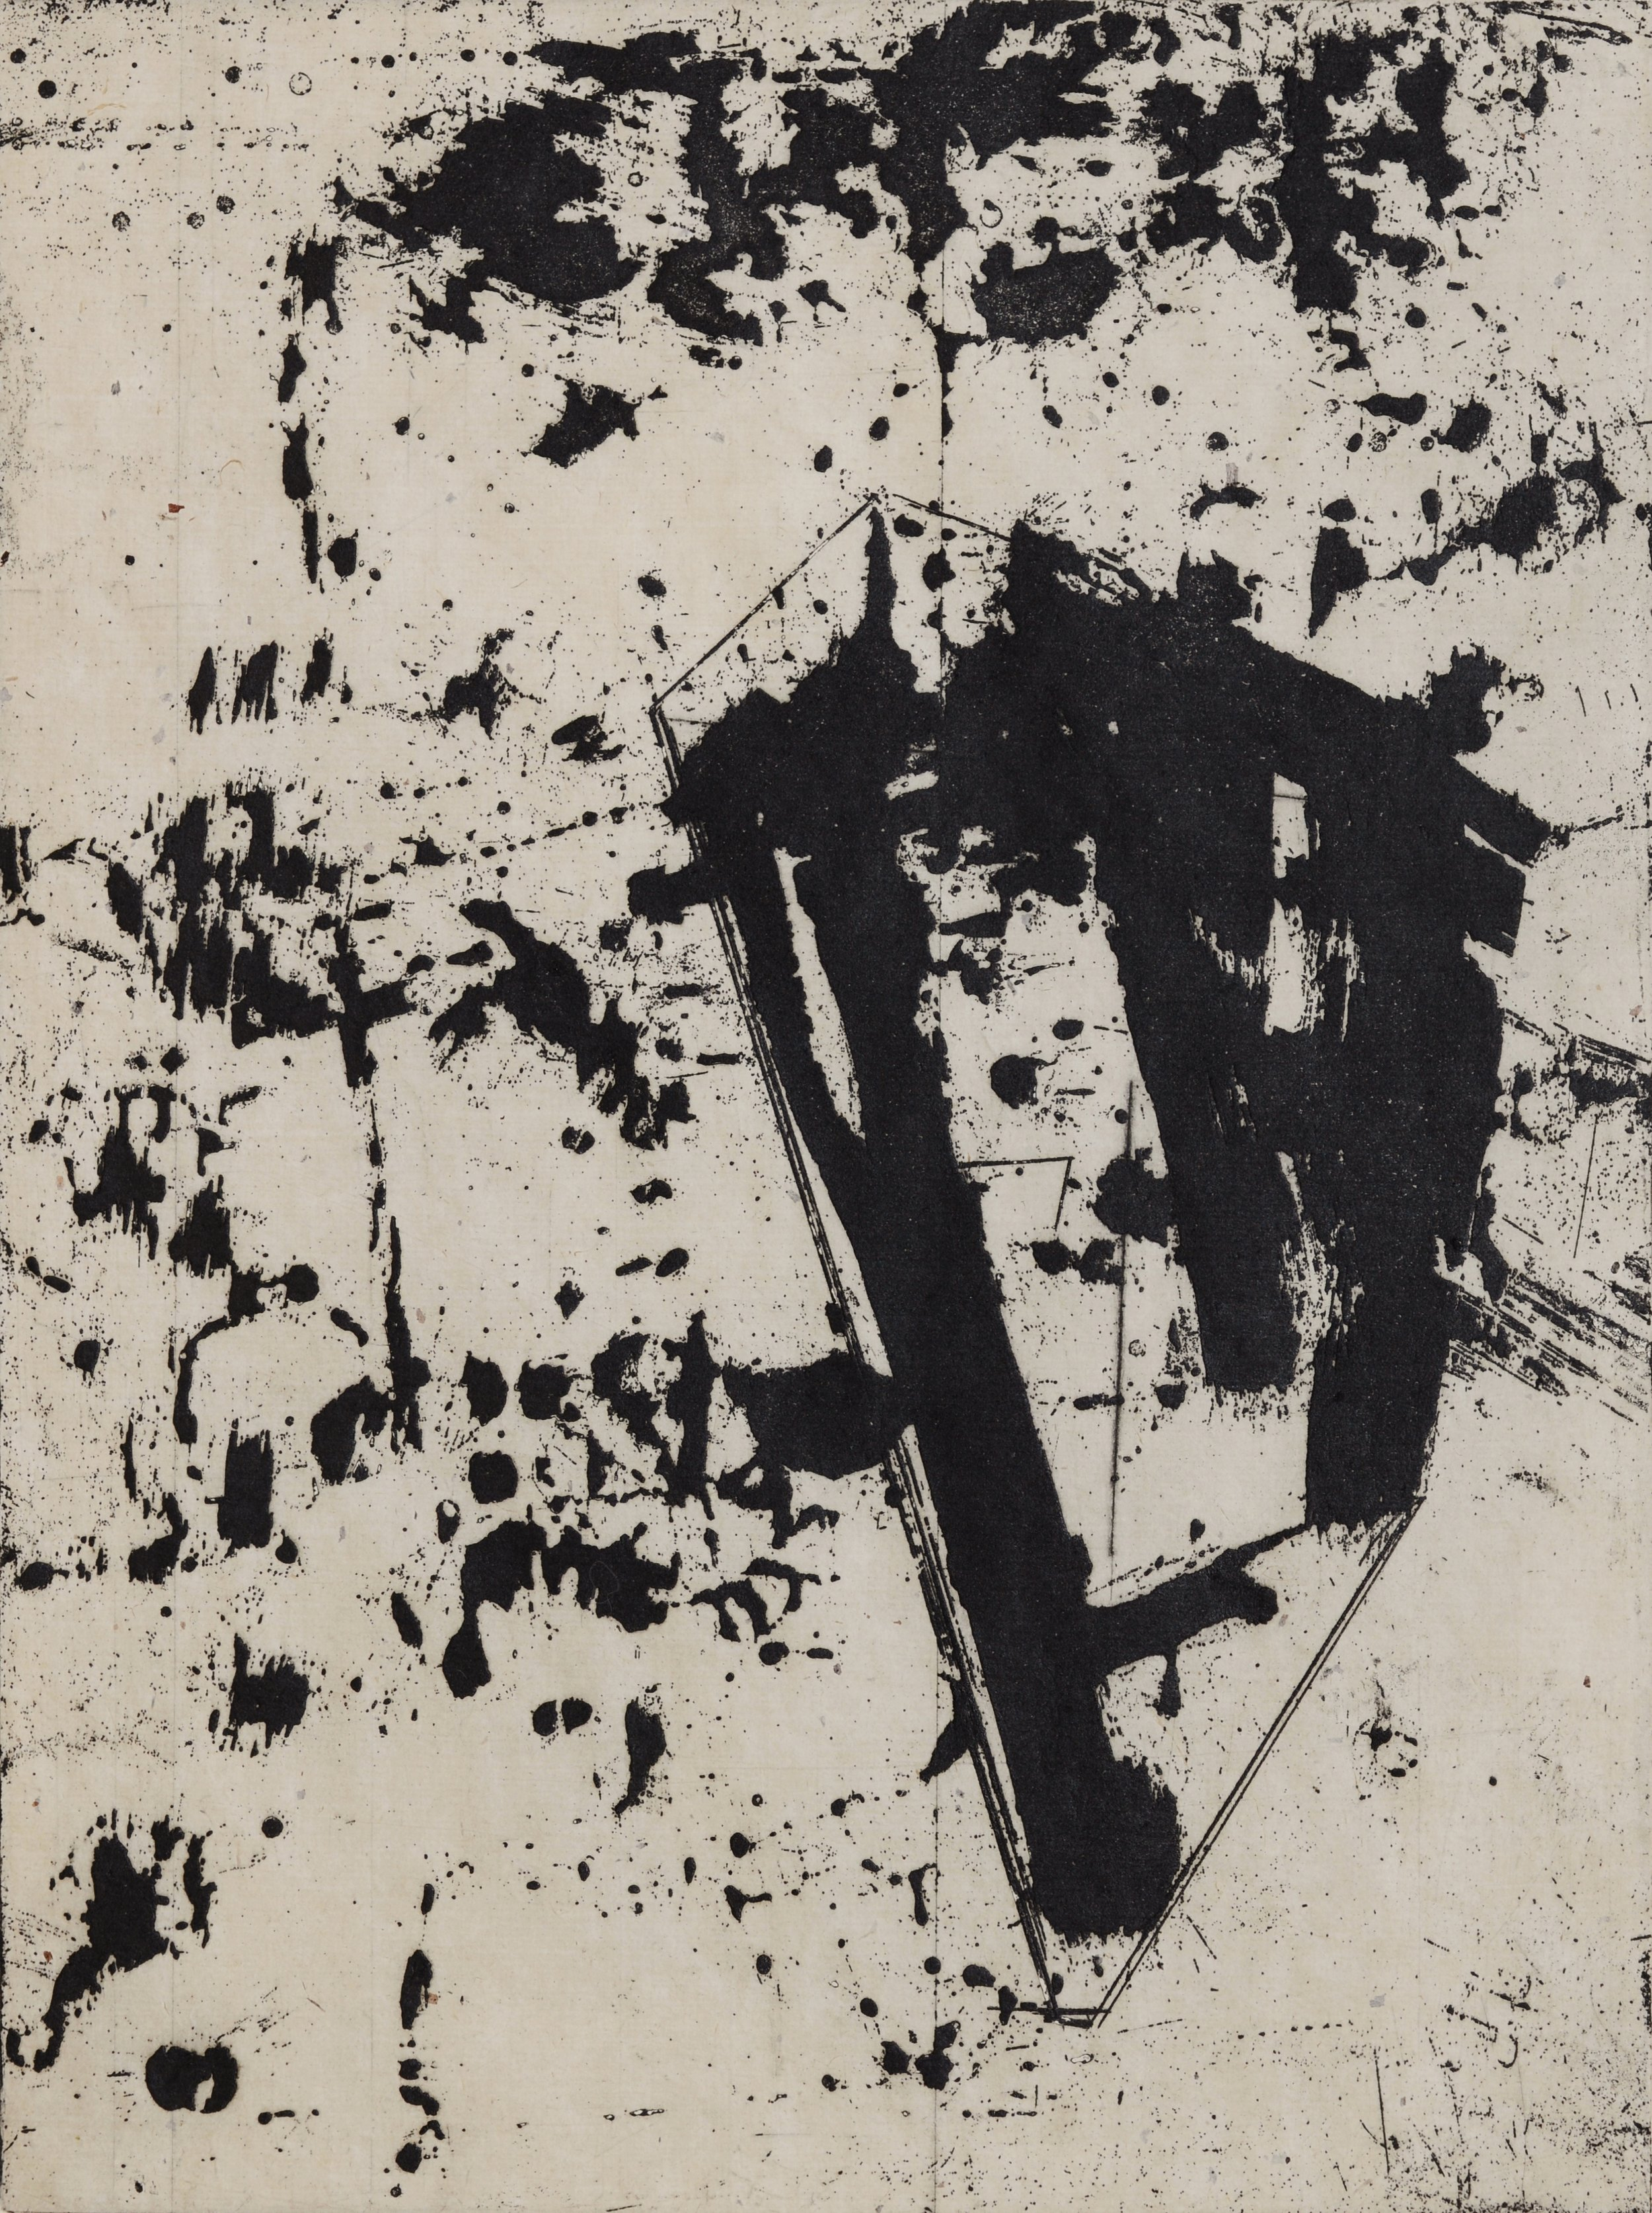 title/Gemstone#2 paper size/63 49 image size/40 30 date/2019 etching